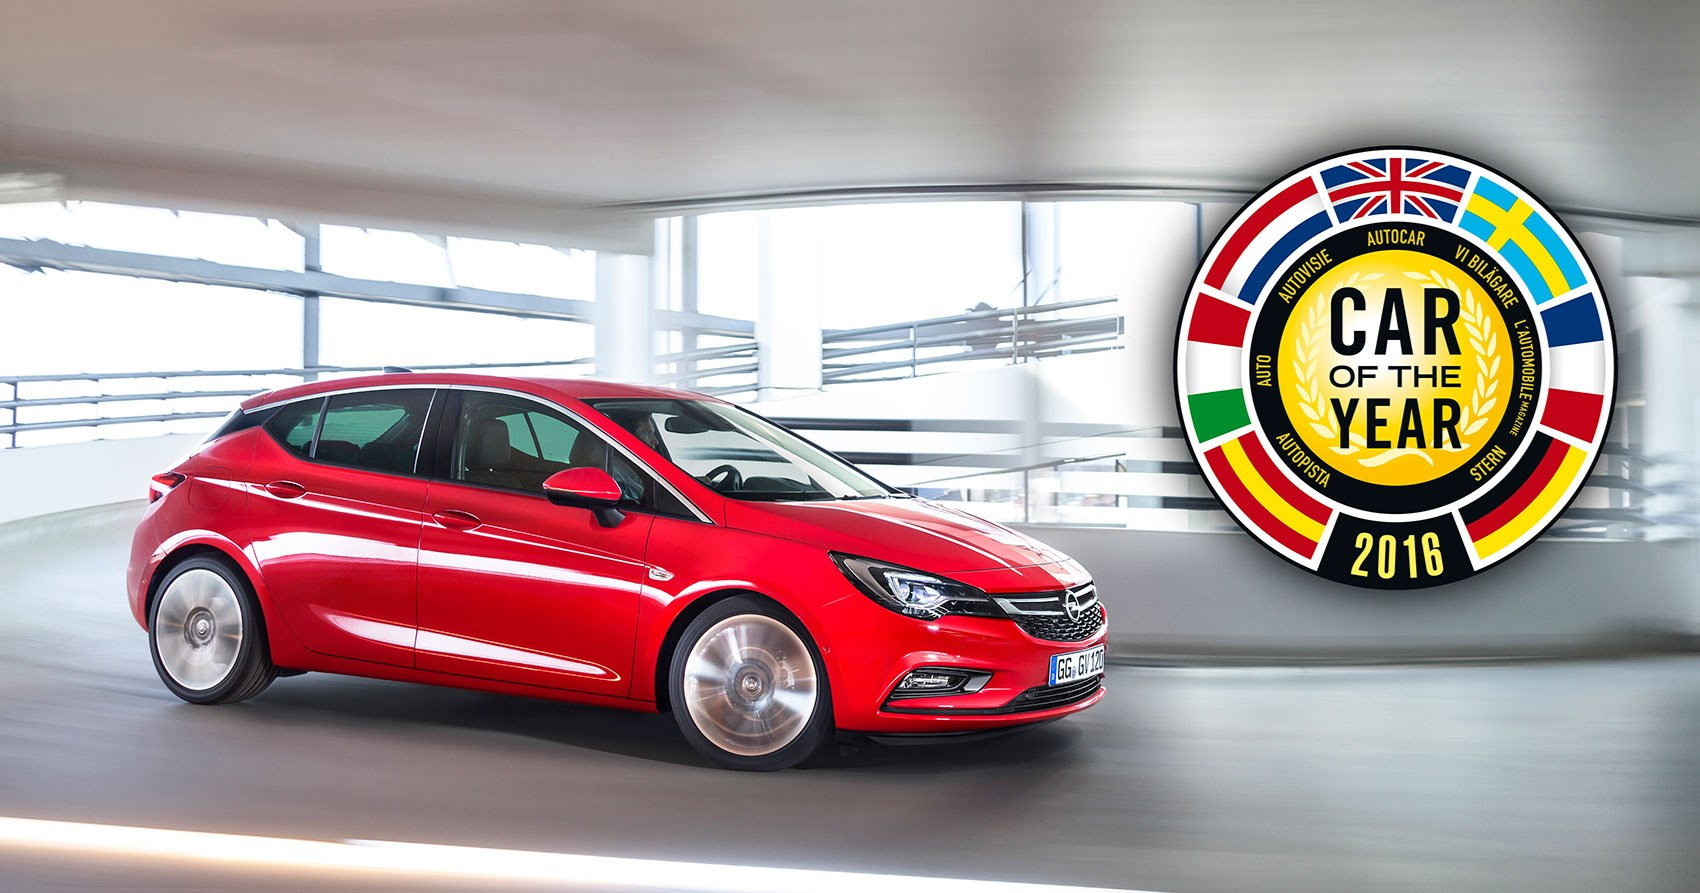 Vauxhall Astra Car Of The Year 2016